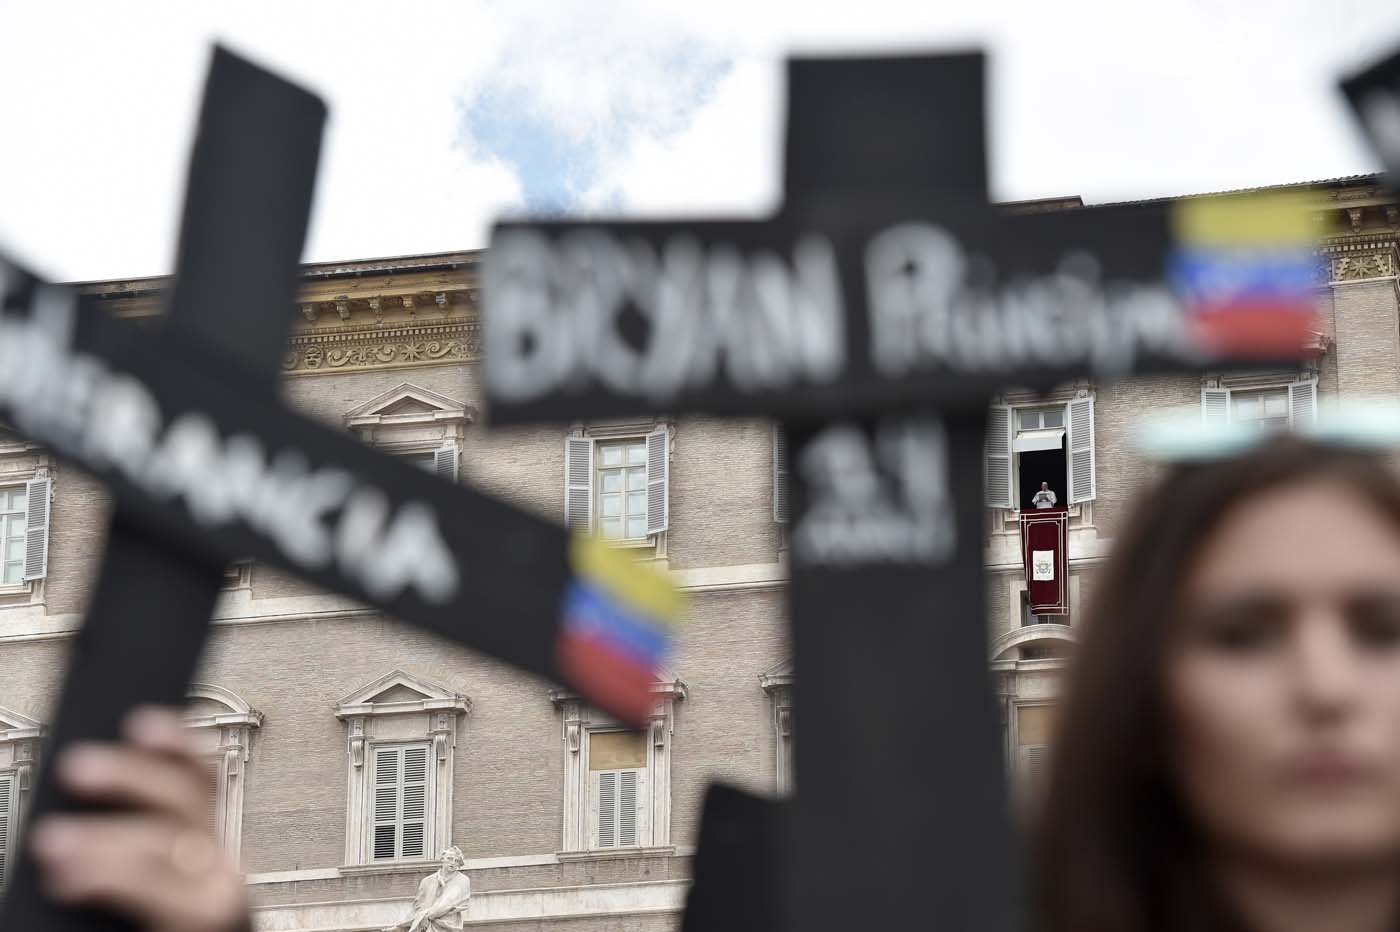 "Members of the Venezuelian community hold black crosses with names of victims of clashes during protests against Venezuela's President Nicolas Maduro, on May 7, 2017 at St Peter's square as Pope Francis stands at the window of the apostolic palace during the Regina Coeli prayer in Vatican. Pope Francis last week made a heartfelt appeal for ""negotiated solutions"" to end the violence in crisis-torn Venezuela for the sake of an ""exhausted population"". The death toll since April -- when the protests intensified after Maduro's administration and the courts stepped up efforts to undermine the opposition -- is at least 36, according to prosecutors, with hundreds more injured. / AFP PHOTO / TIZIANA FABI"